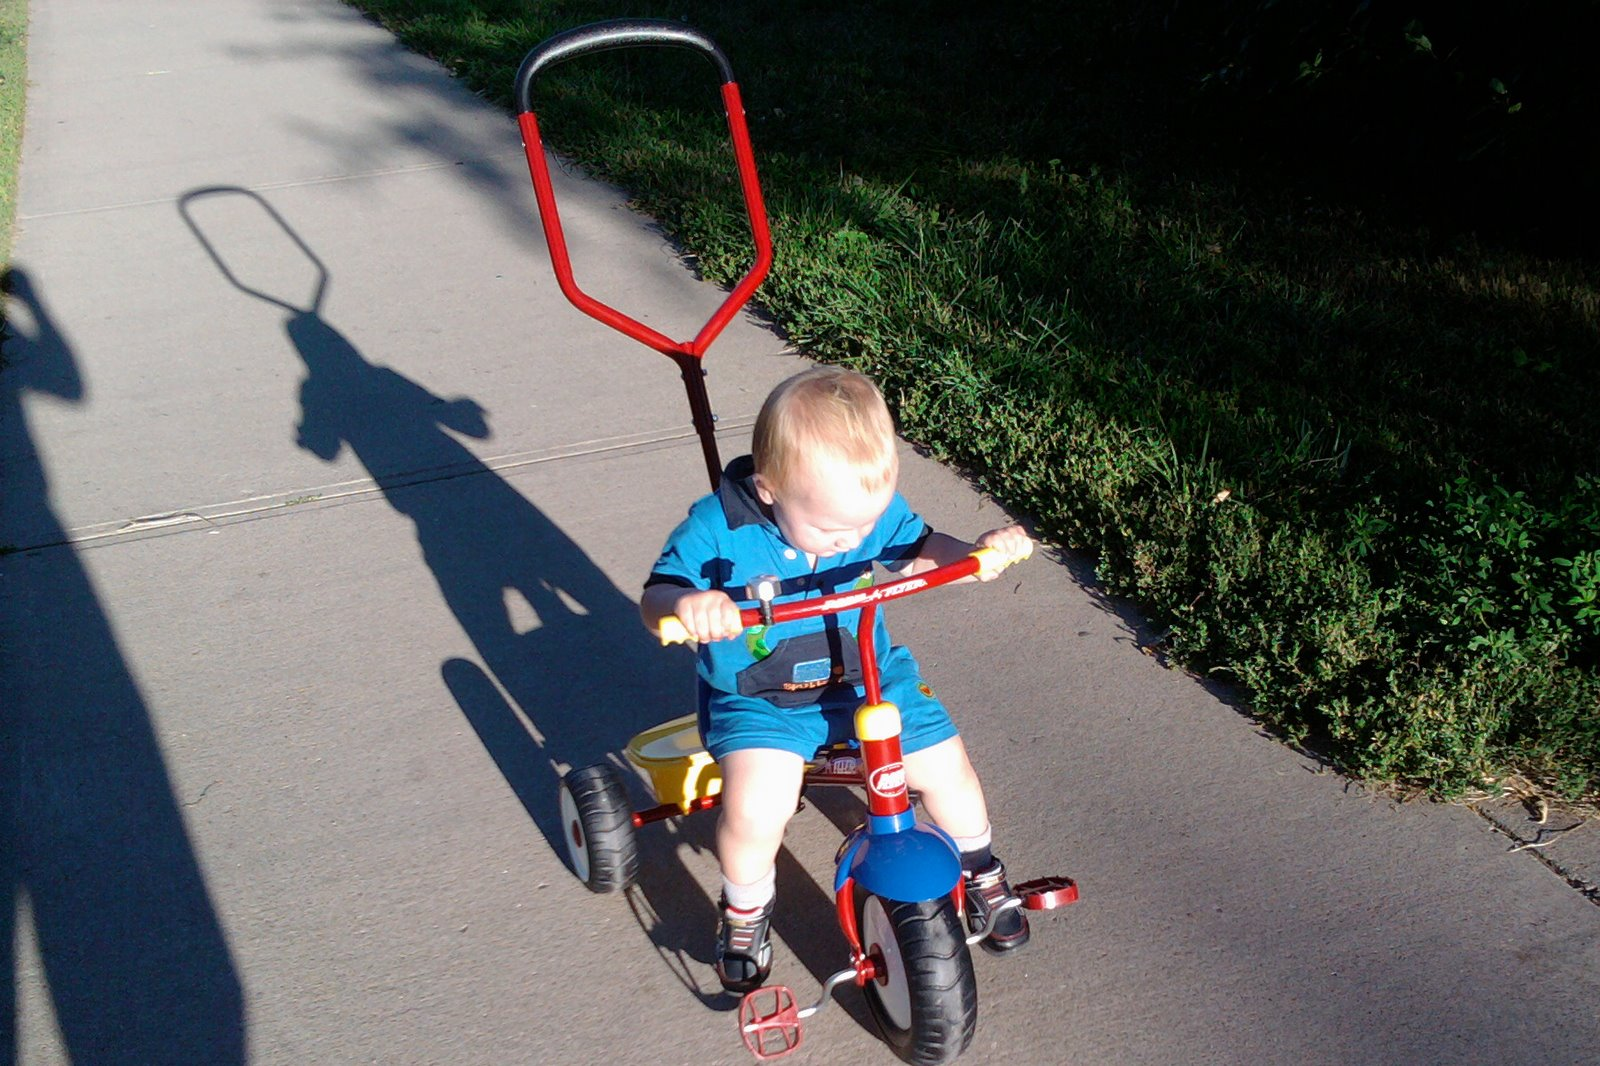 Spencer on his new tricycle